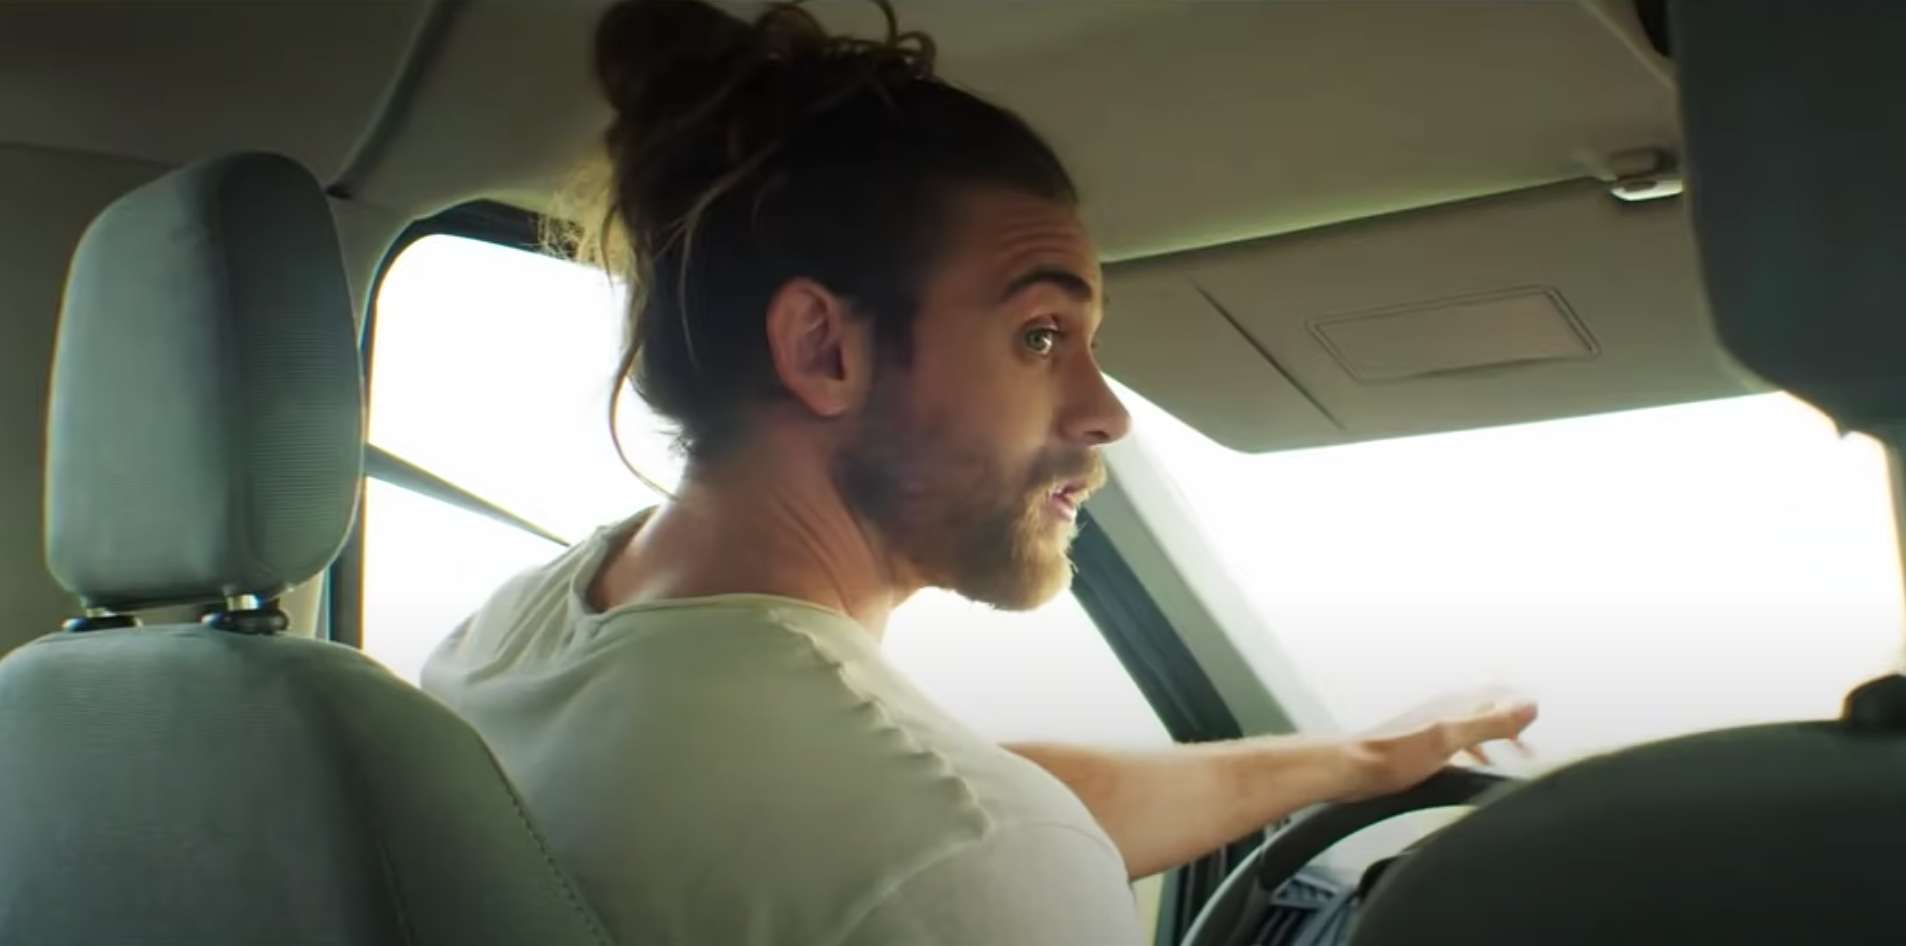 INTERVIEW: 'The Resort' Star Brock O'Hurn Talks Horror, Fun Times Filming, and Finding Himself in 2021